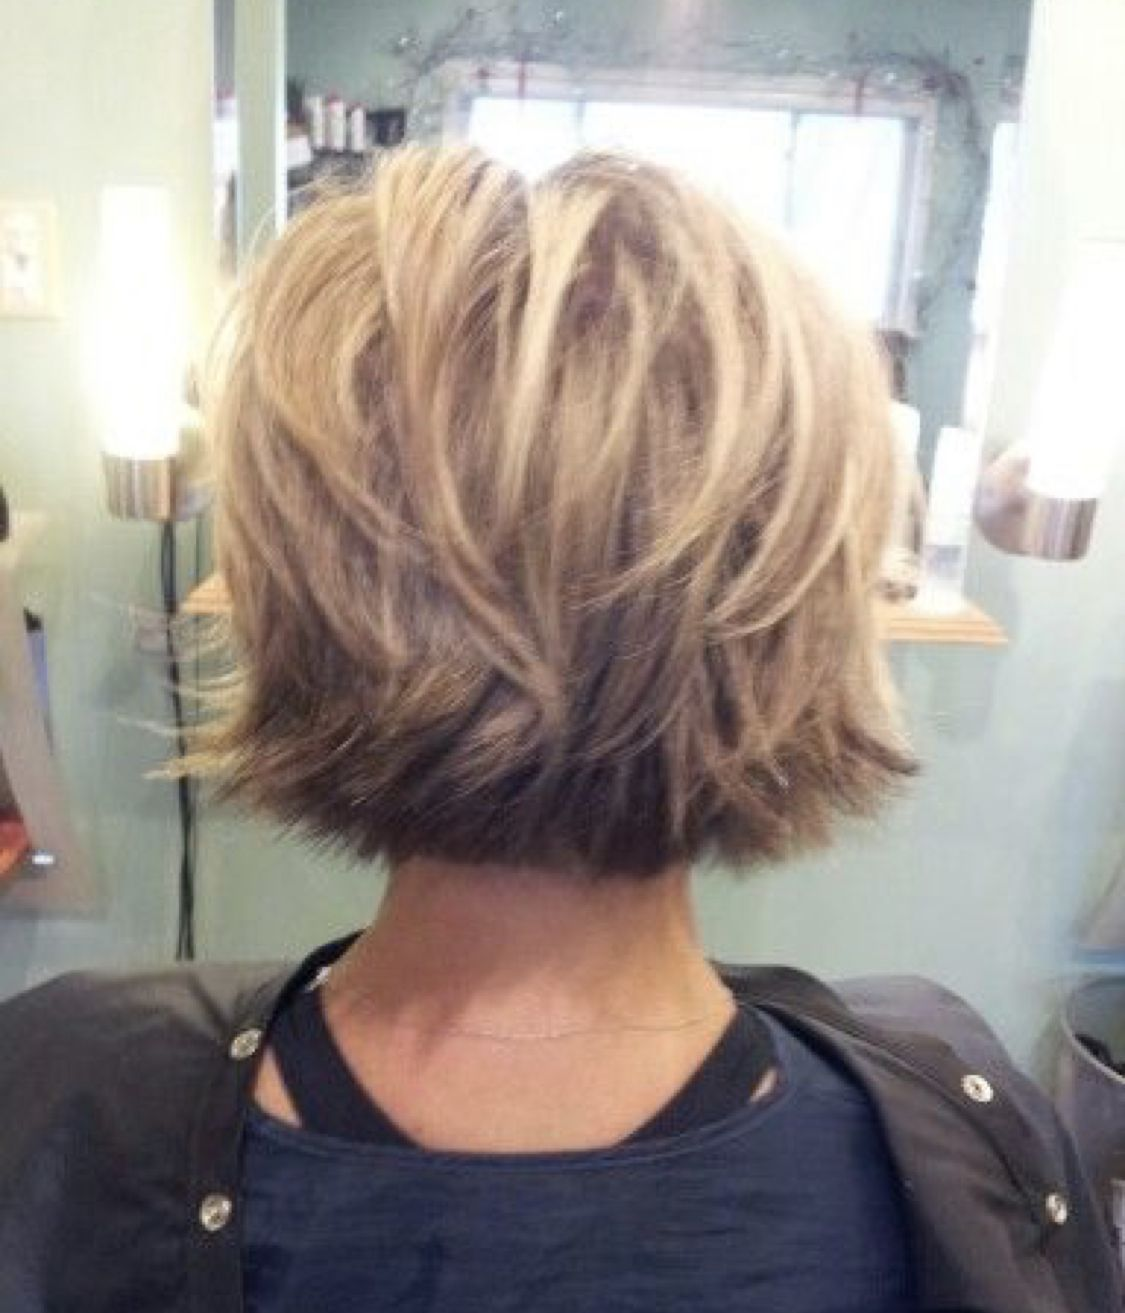 Hairstyle Ideas Instagram Hairstyle Ideas Creative Hairstyle Ideas Romantic Hairstyle Ideas And How To Do Th In 2020 Bobs For Thin Hair Hairstyle Short Hair Styles